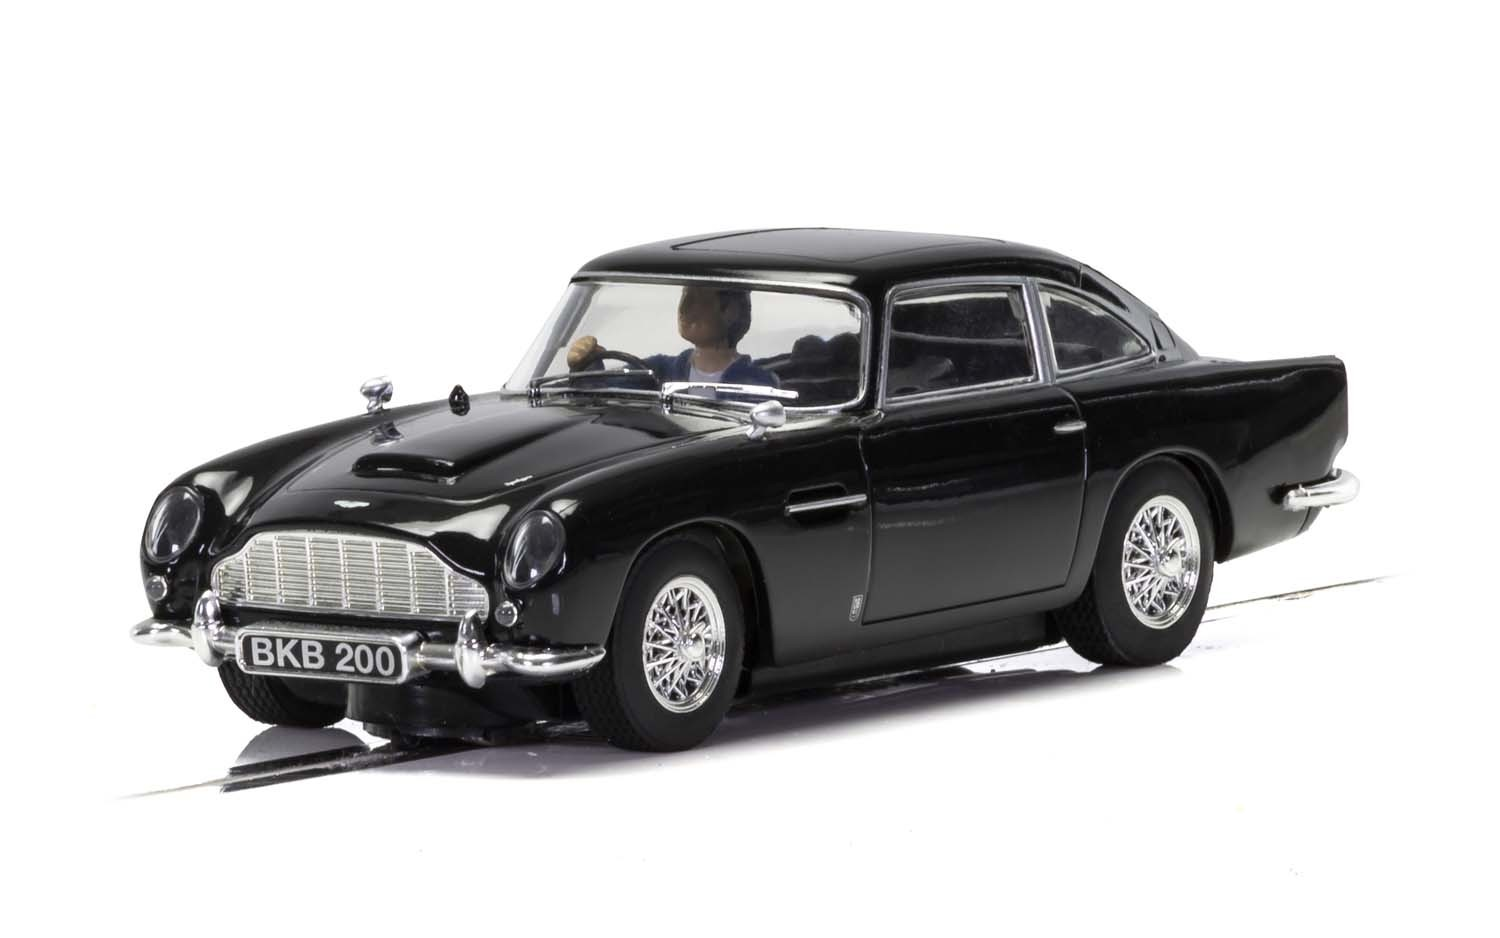 SCALEXTRIC C4029 - Aston Martin DB5 - black